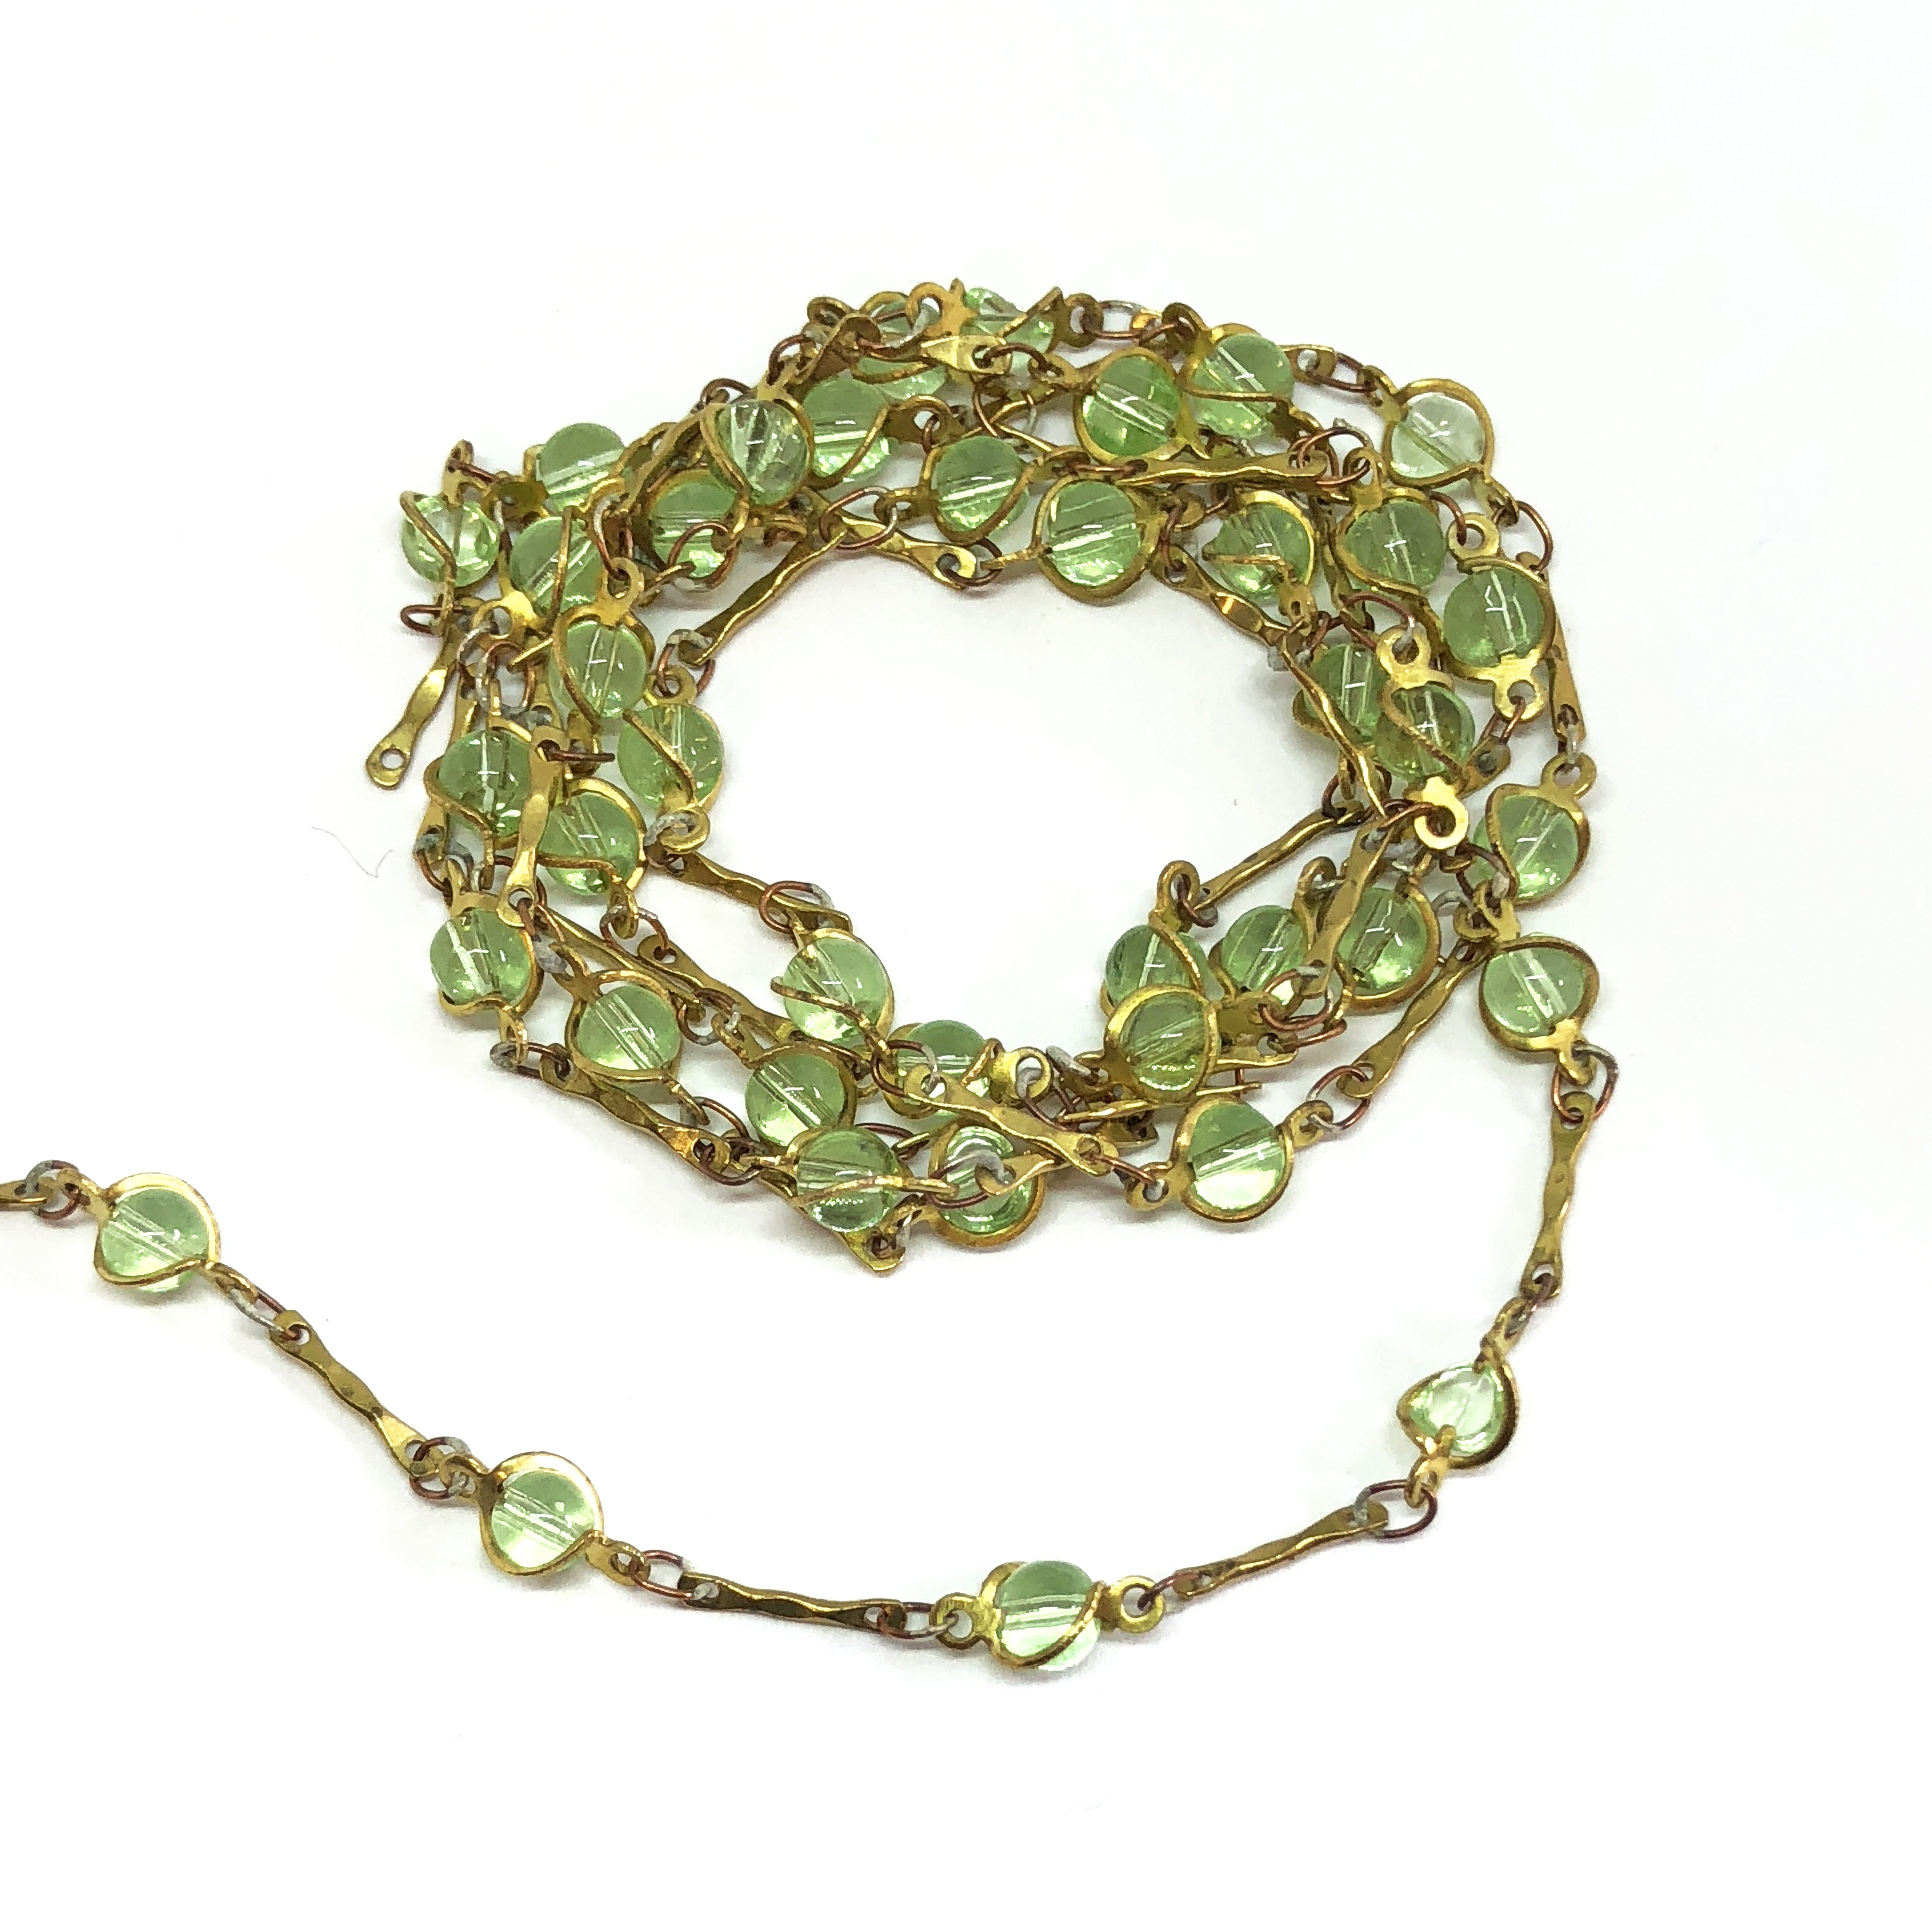 caged bead and link chain, bead and link chain, peridot bead chain,  jewelry chain, jewelry making supplies, vintage jewelry supplies, bead chain,  glass beads, chain, beaded chain, caged beads, transparent peridot beads, antique brass chain, 08053